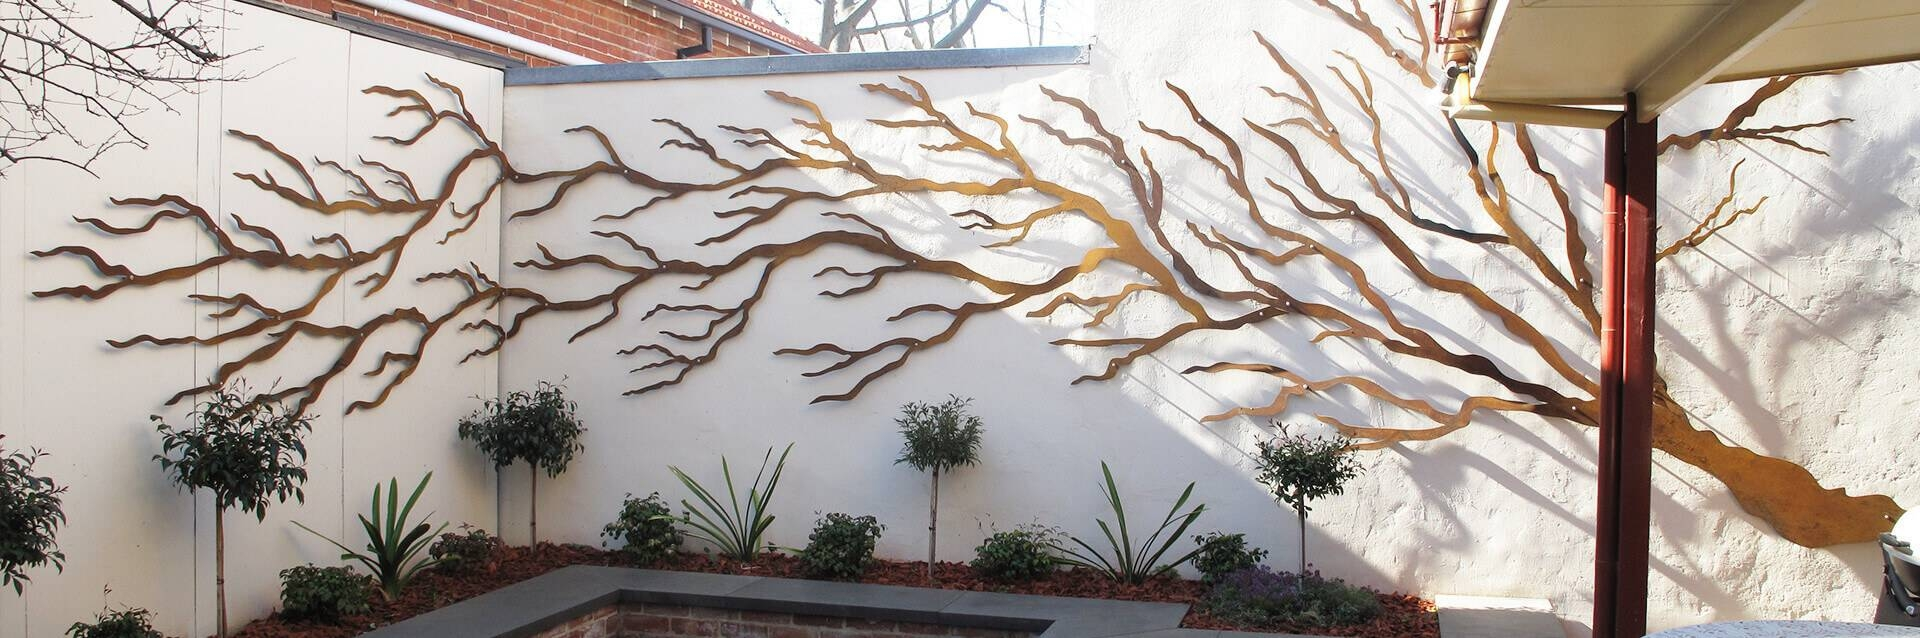 Garden Wall Art Australia | Home Outdoor Decoration Within Most Current Garden Wall Art (View 13 of 30)